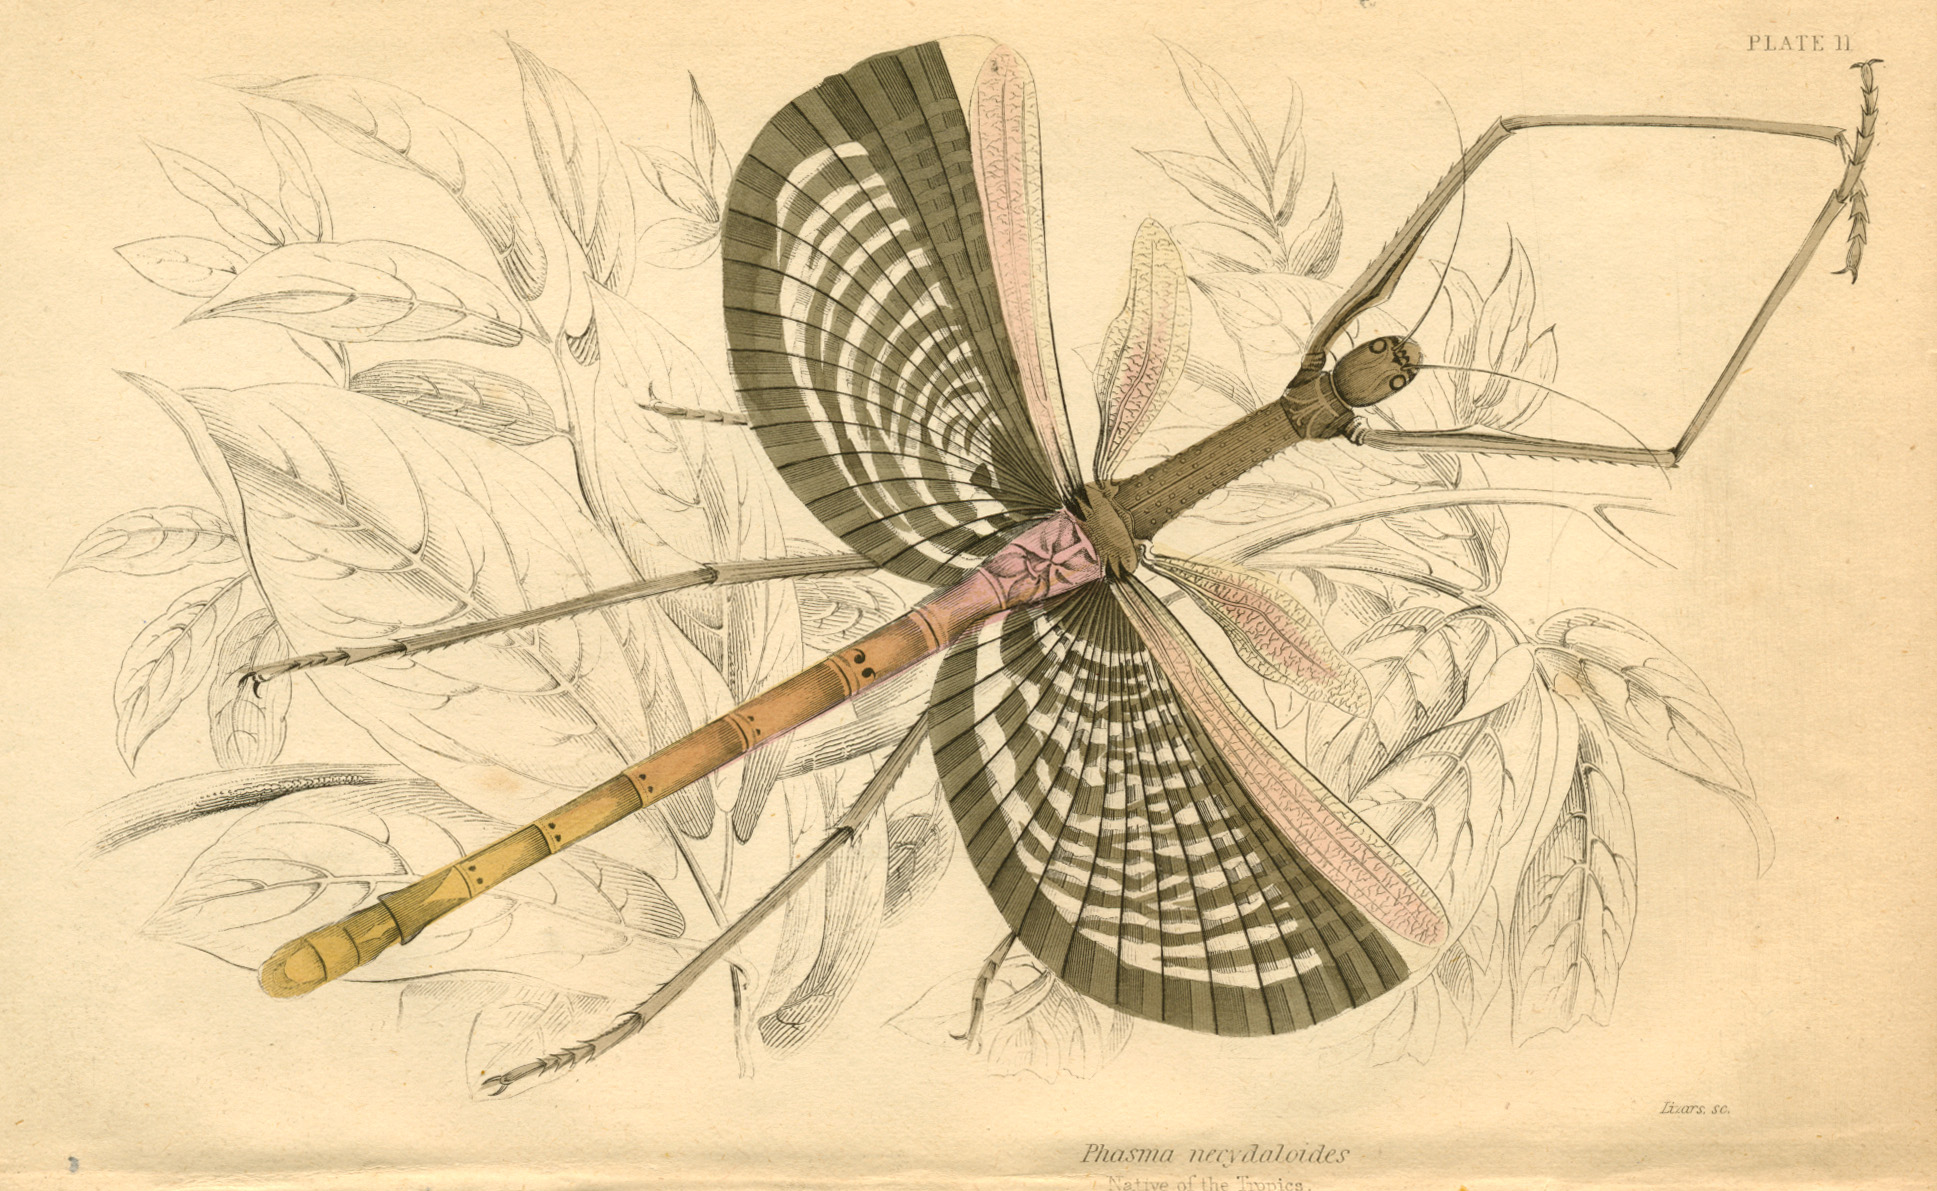 Stick Insect, Phasma necydaloides fine hand-coloured steel engraving c1840.